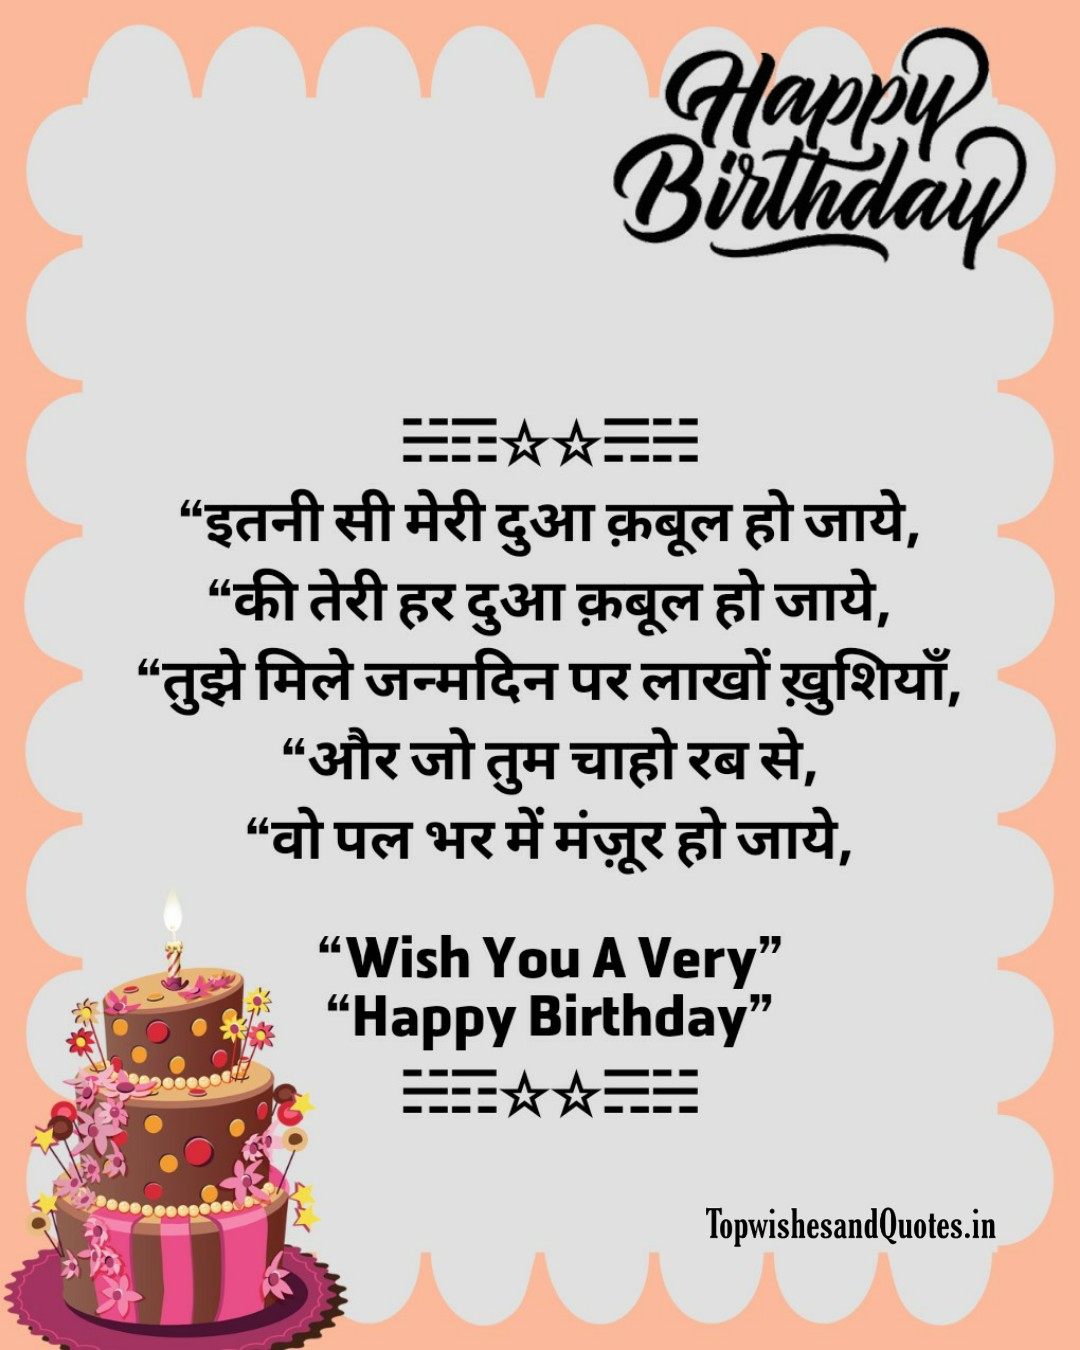 Happy Birthday Wishes In Hindi || Happy Birthday Shayri Image In HD